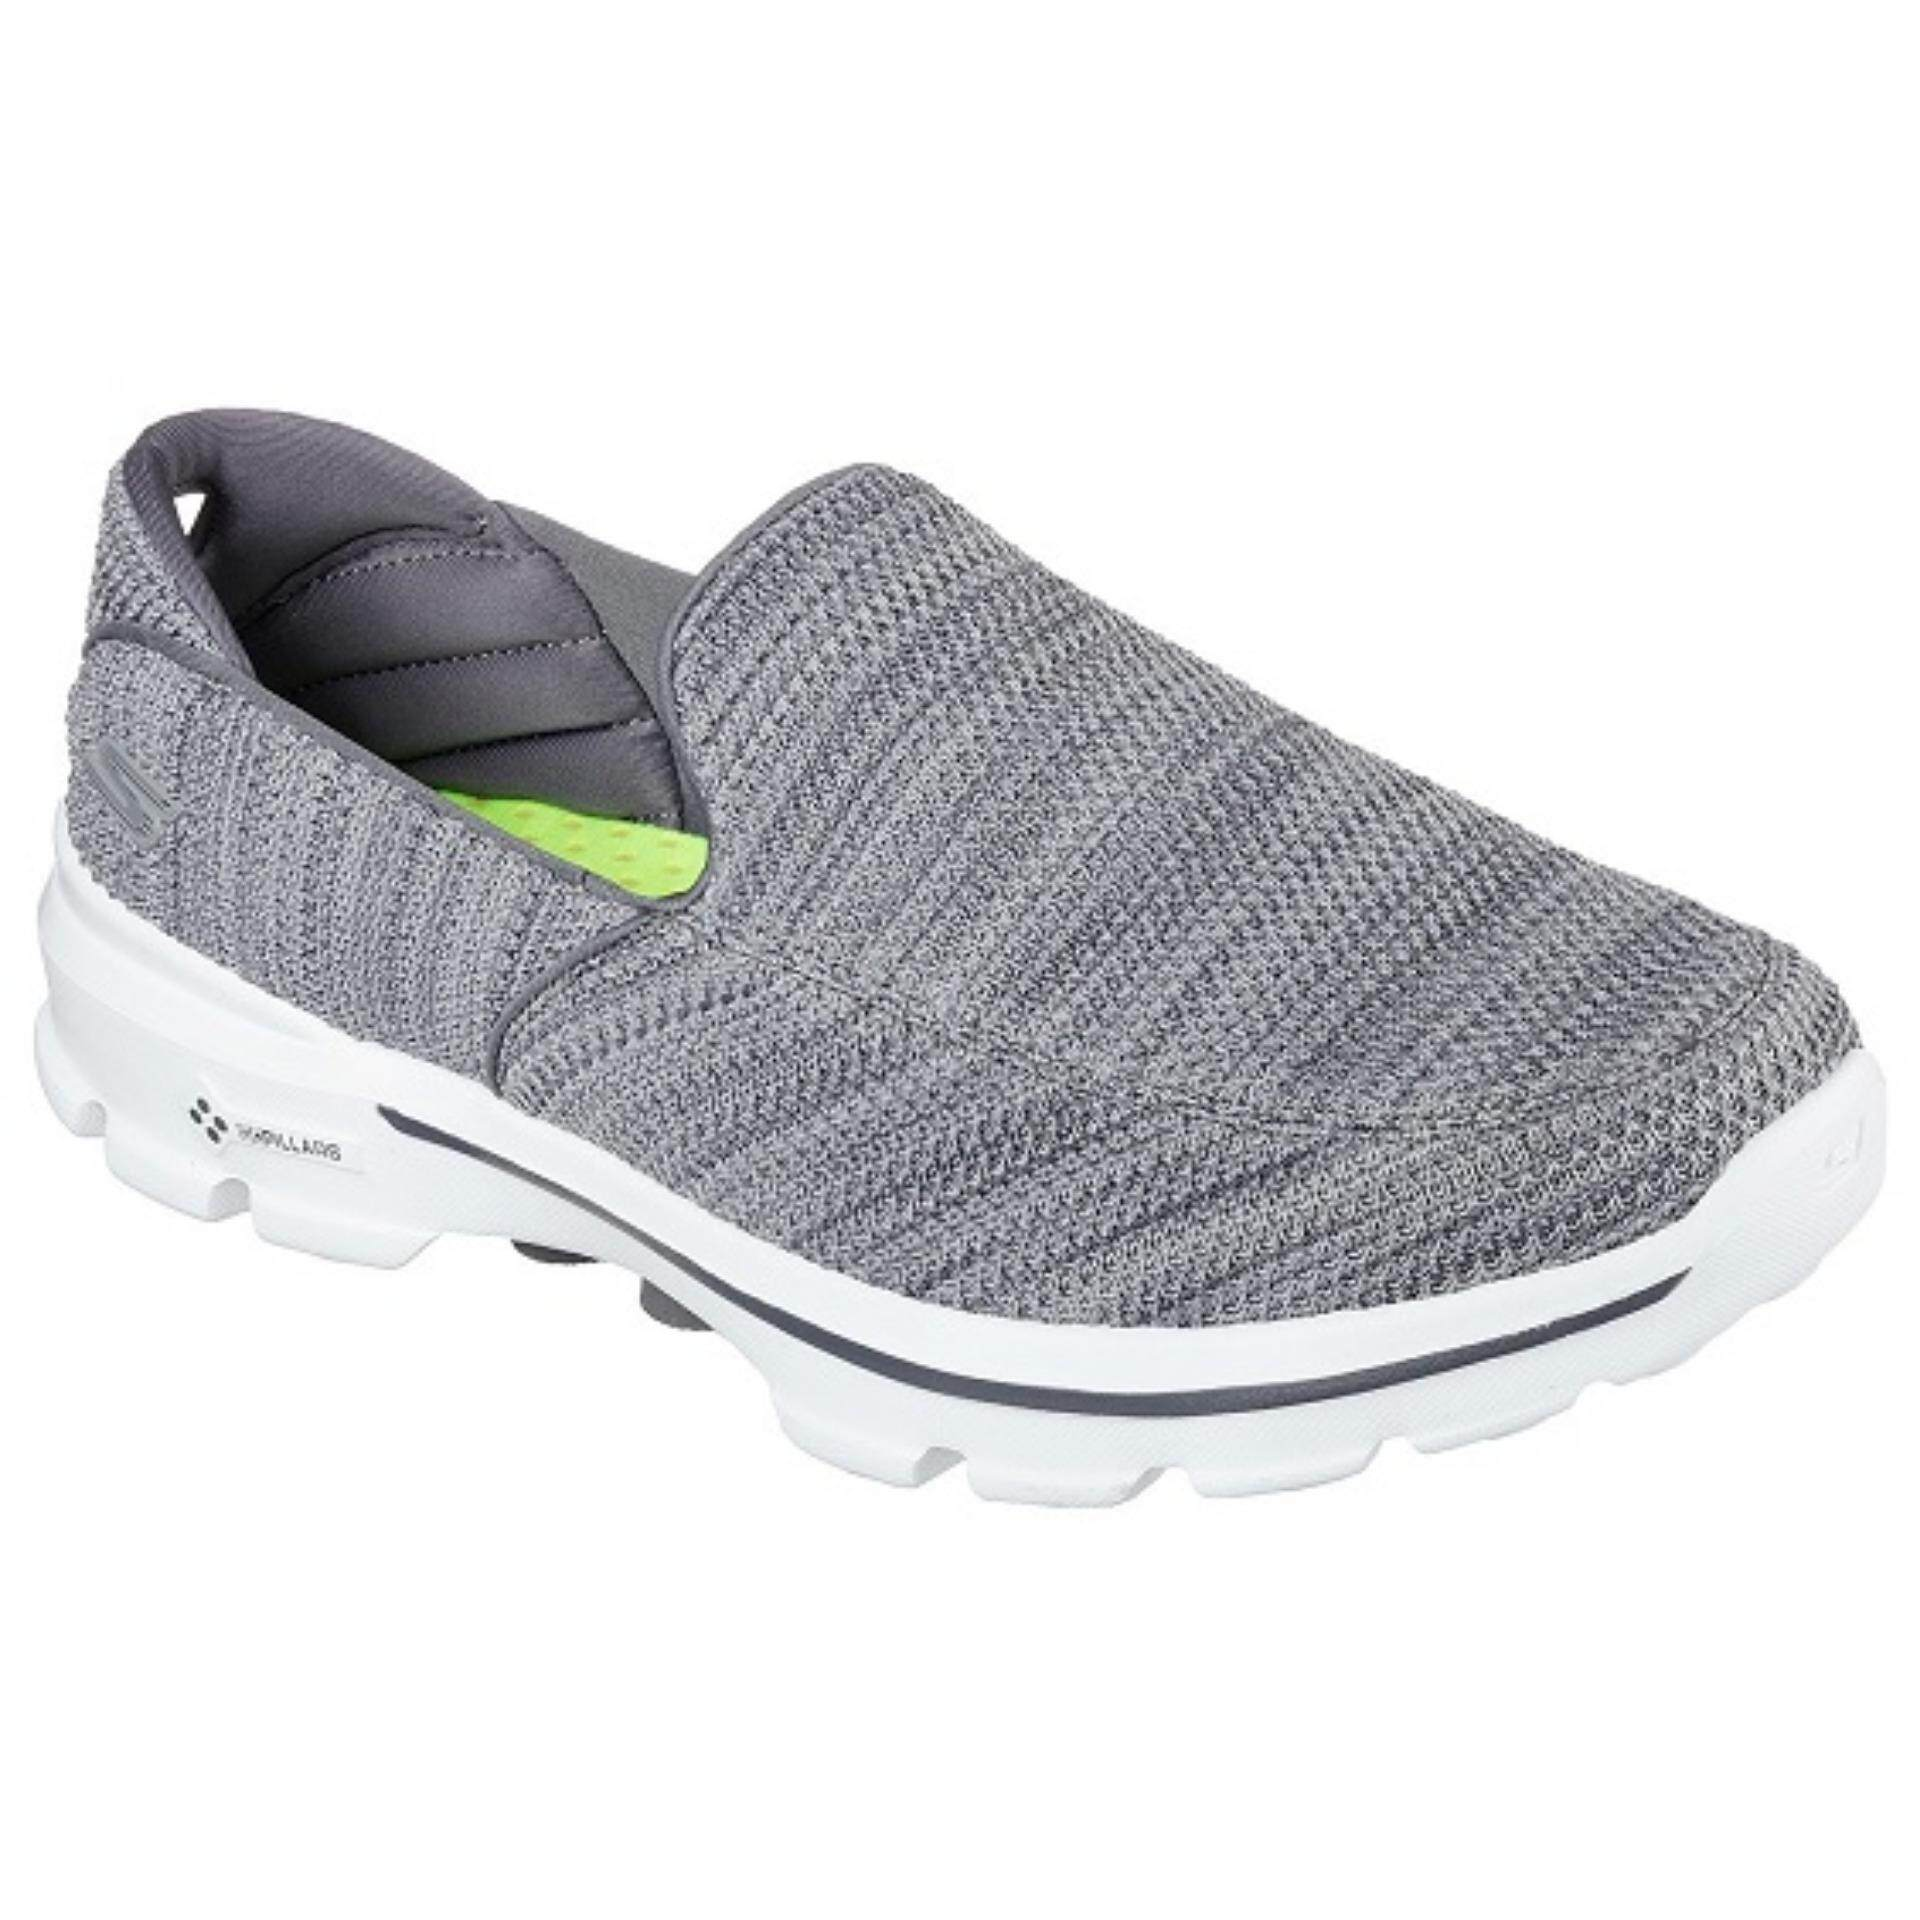 Skechers Malaysia - Buy Skechers Malaysia at Best Price in Malaysia ... fcc2a28009